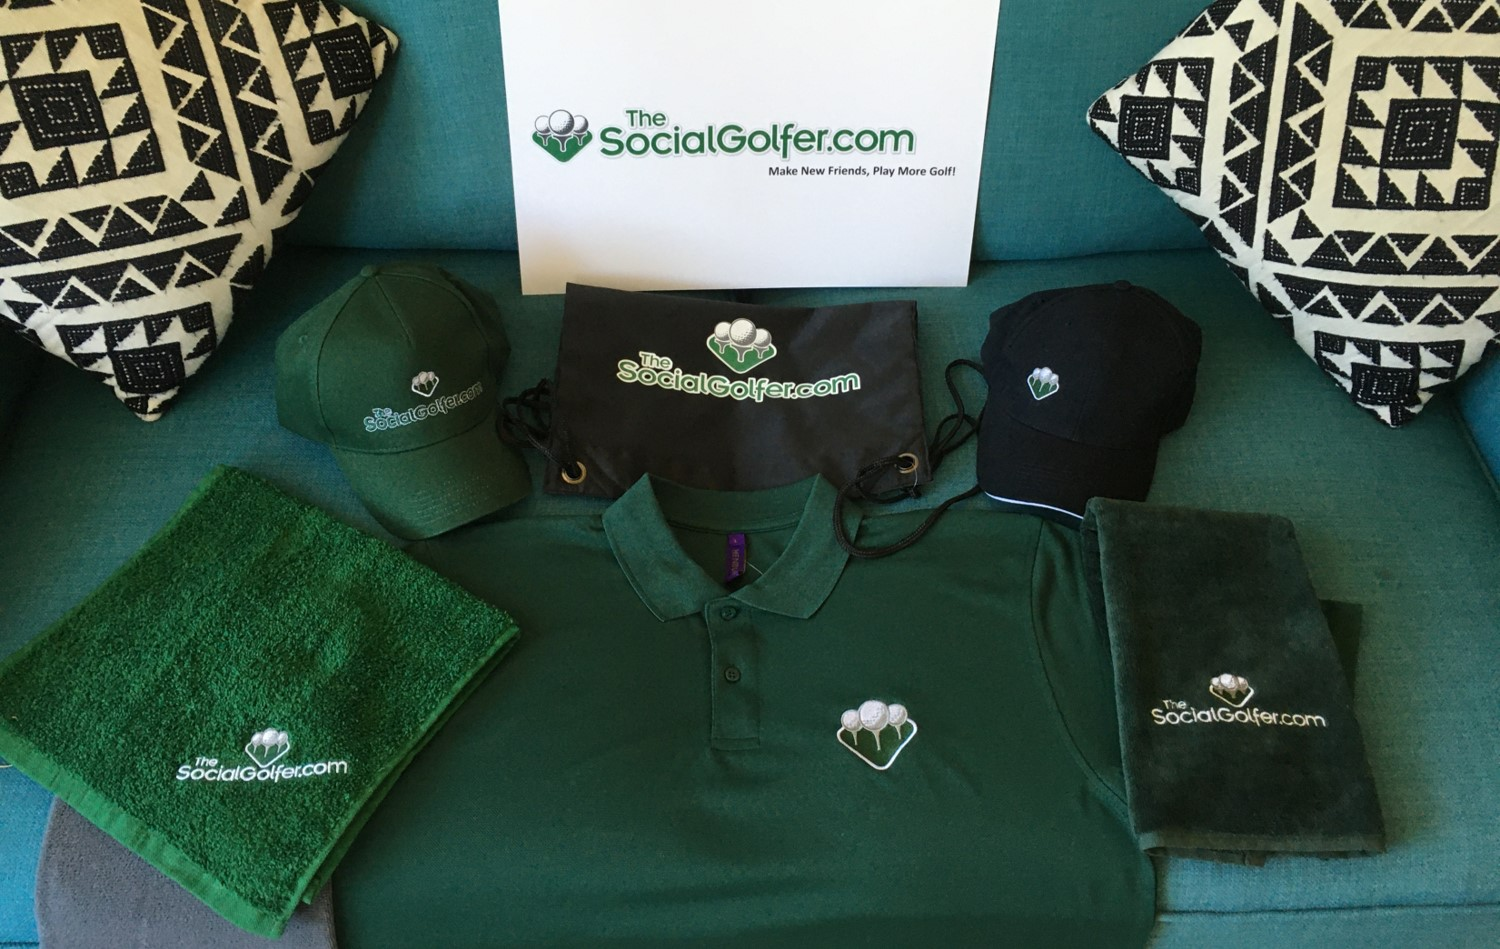 Celtic Manor 2010 competition - TheSocialGolfer.com Merchandise 2020